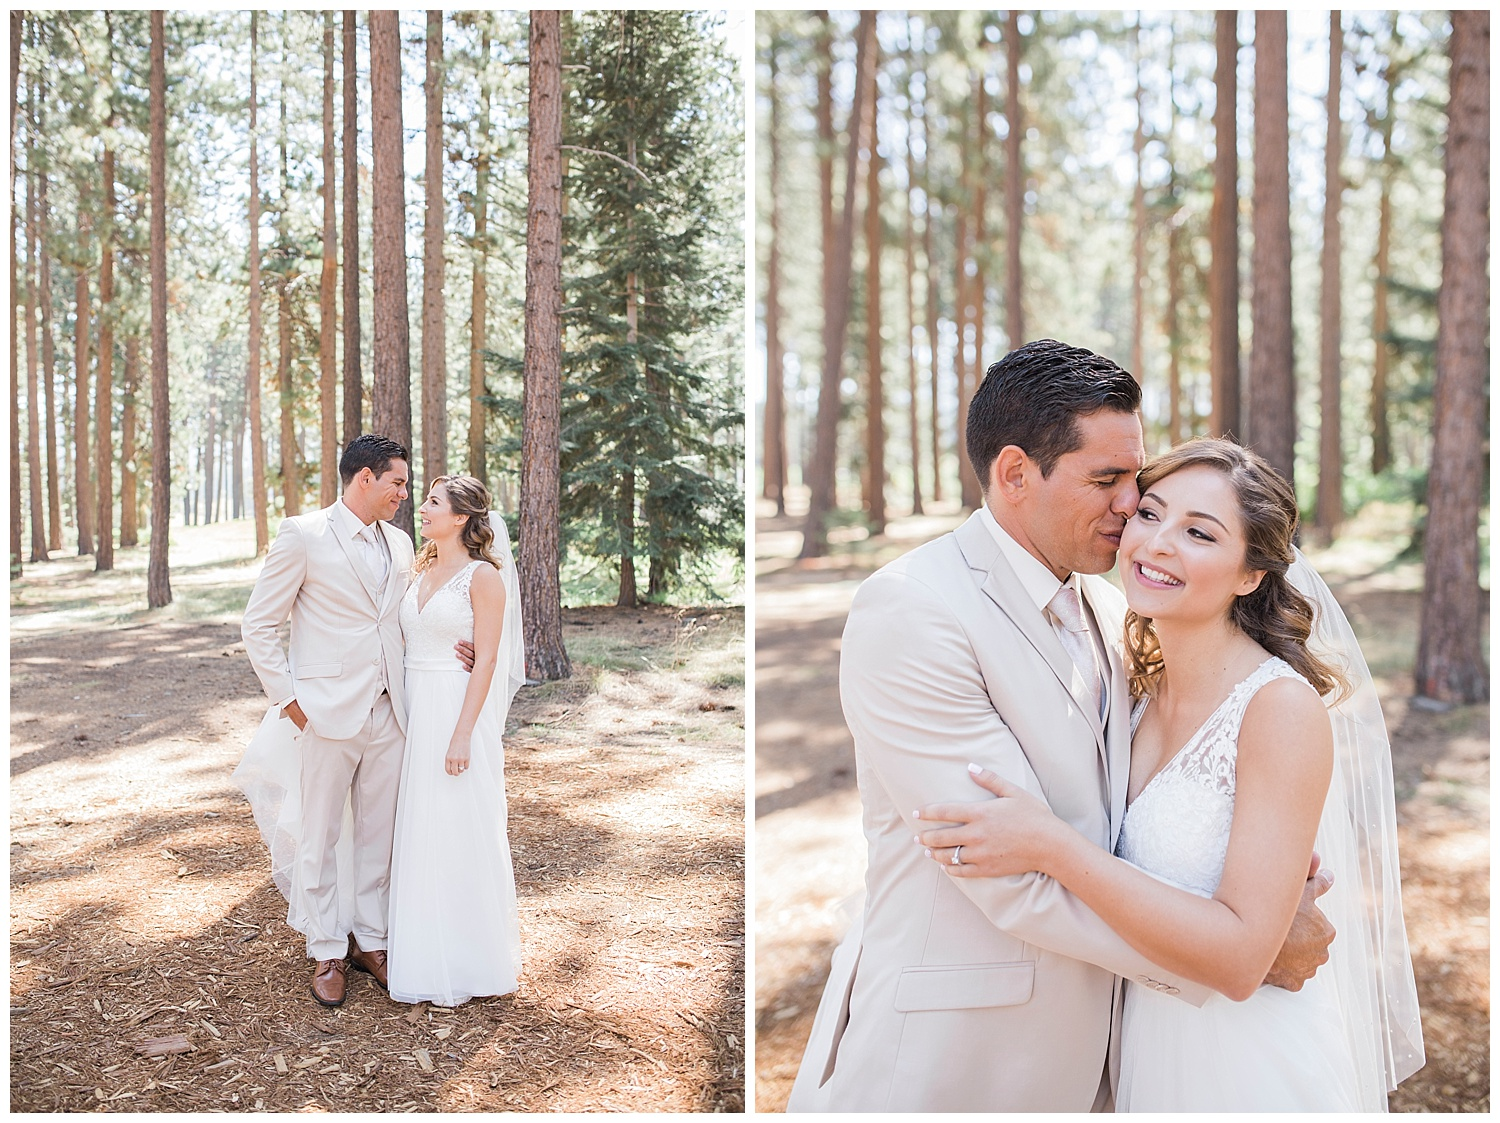 tahoe-wedding-edgewood-nicole-quiroz-photographer-lake-tahoe-california-sacramento-NICOLEQUIROZ_007.jpg